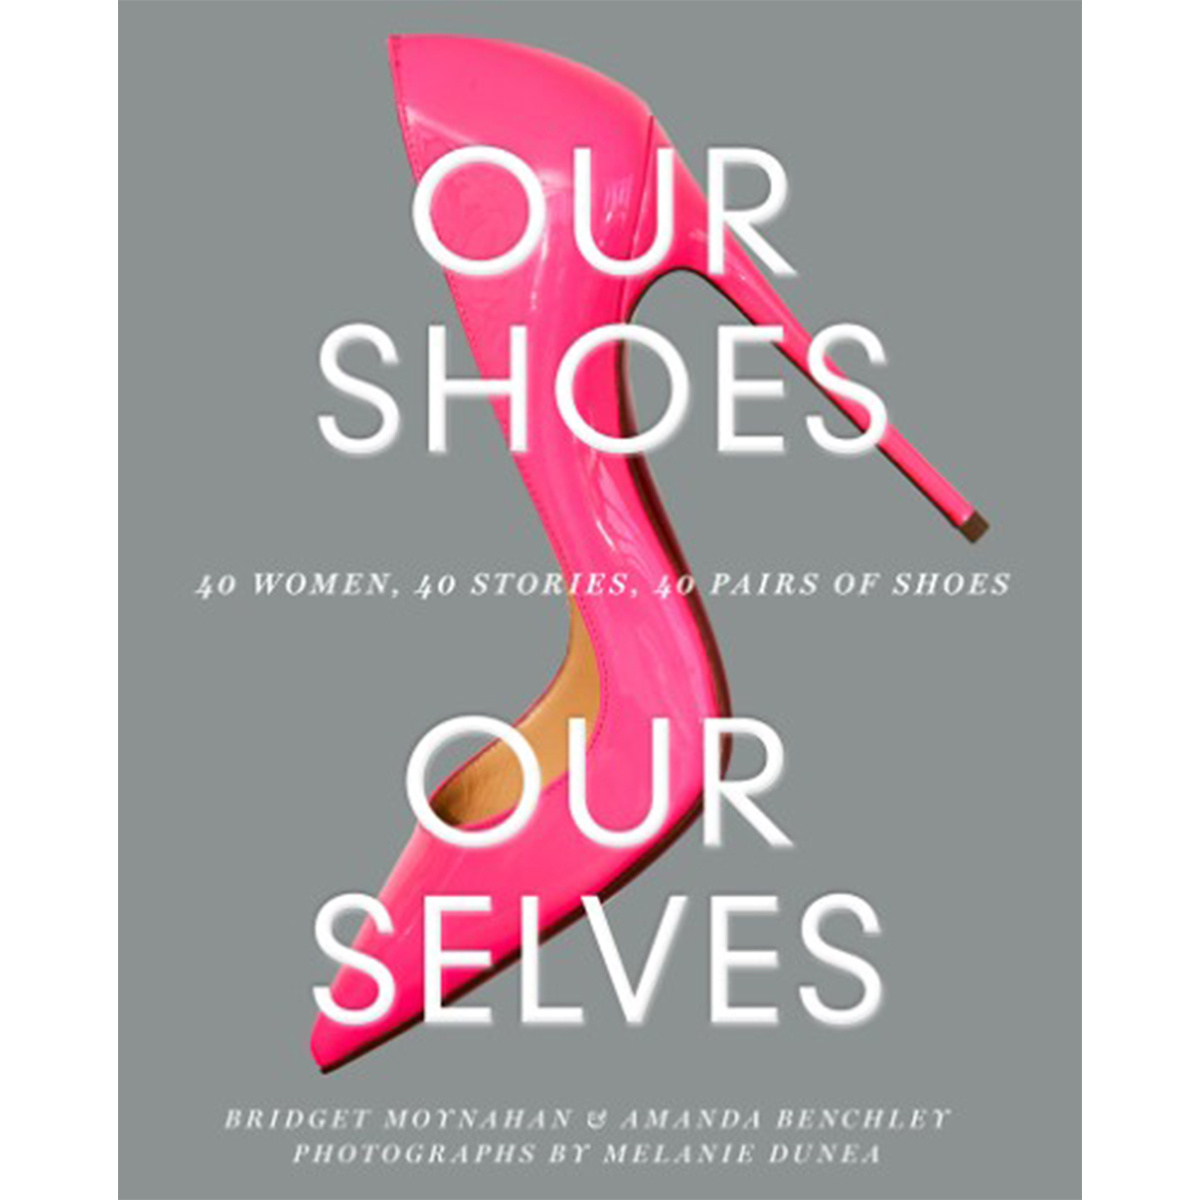 Abrams Our Shoes Our Selves by Bridget Moynahan and Amanda Benchley